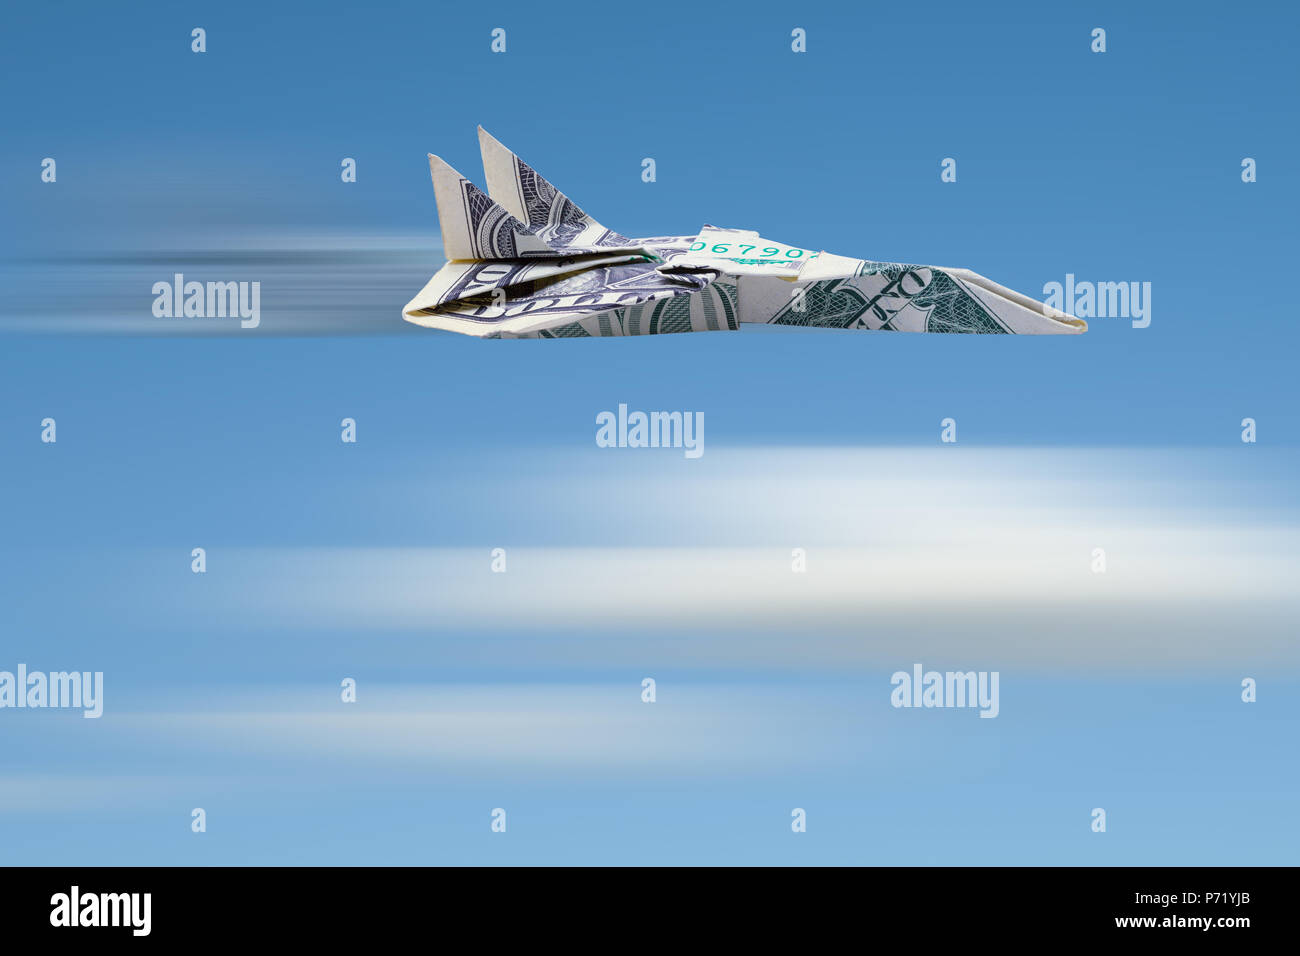 Dollar Jet Airplane Flying Fast in the Sky. - Stock Image